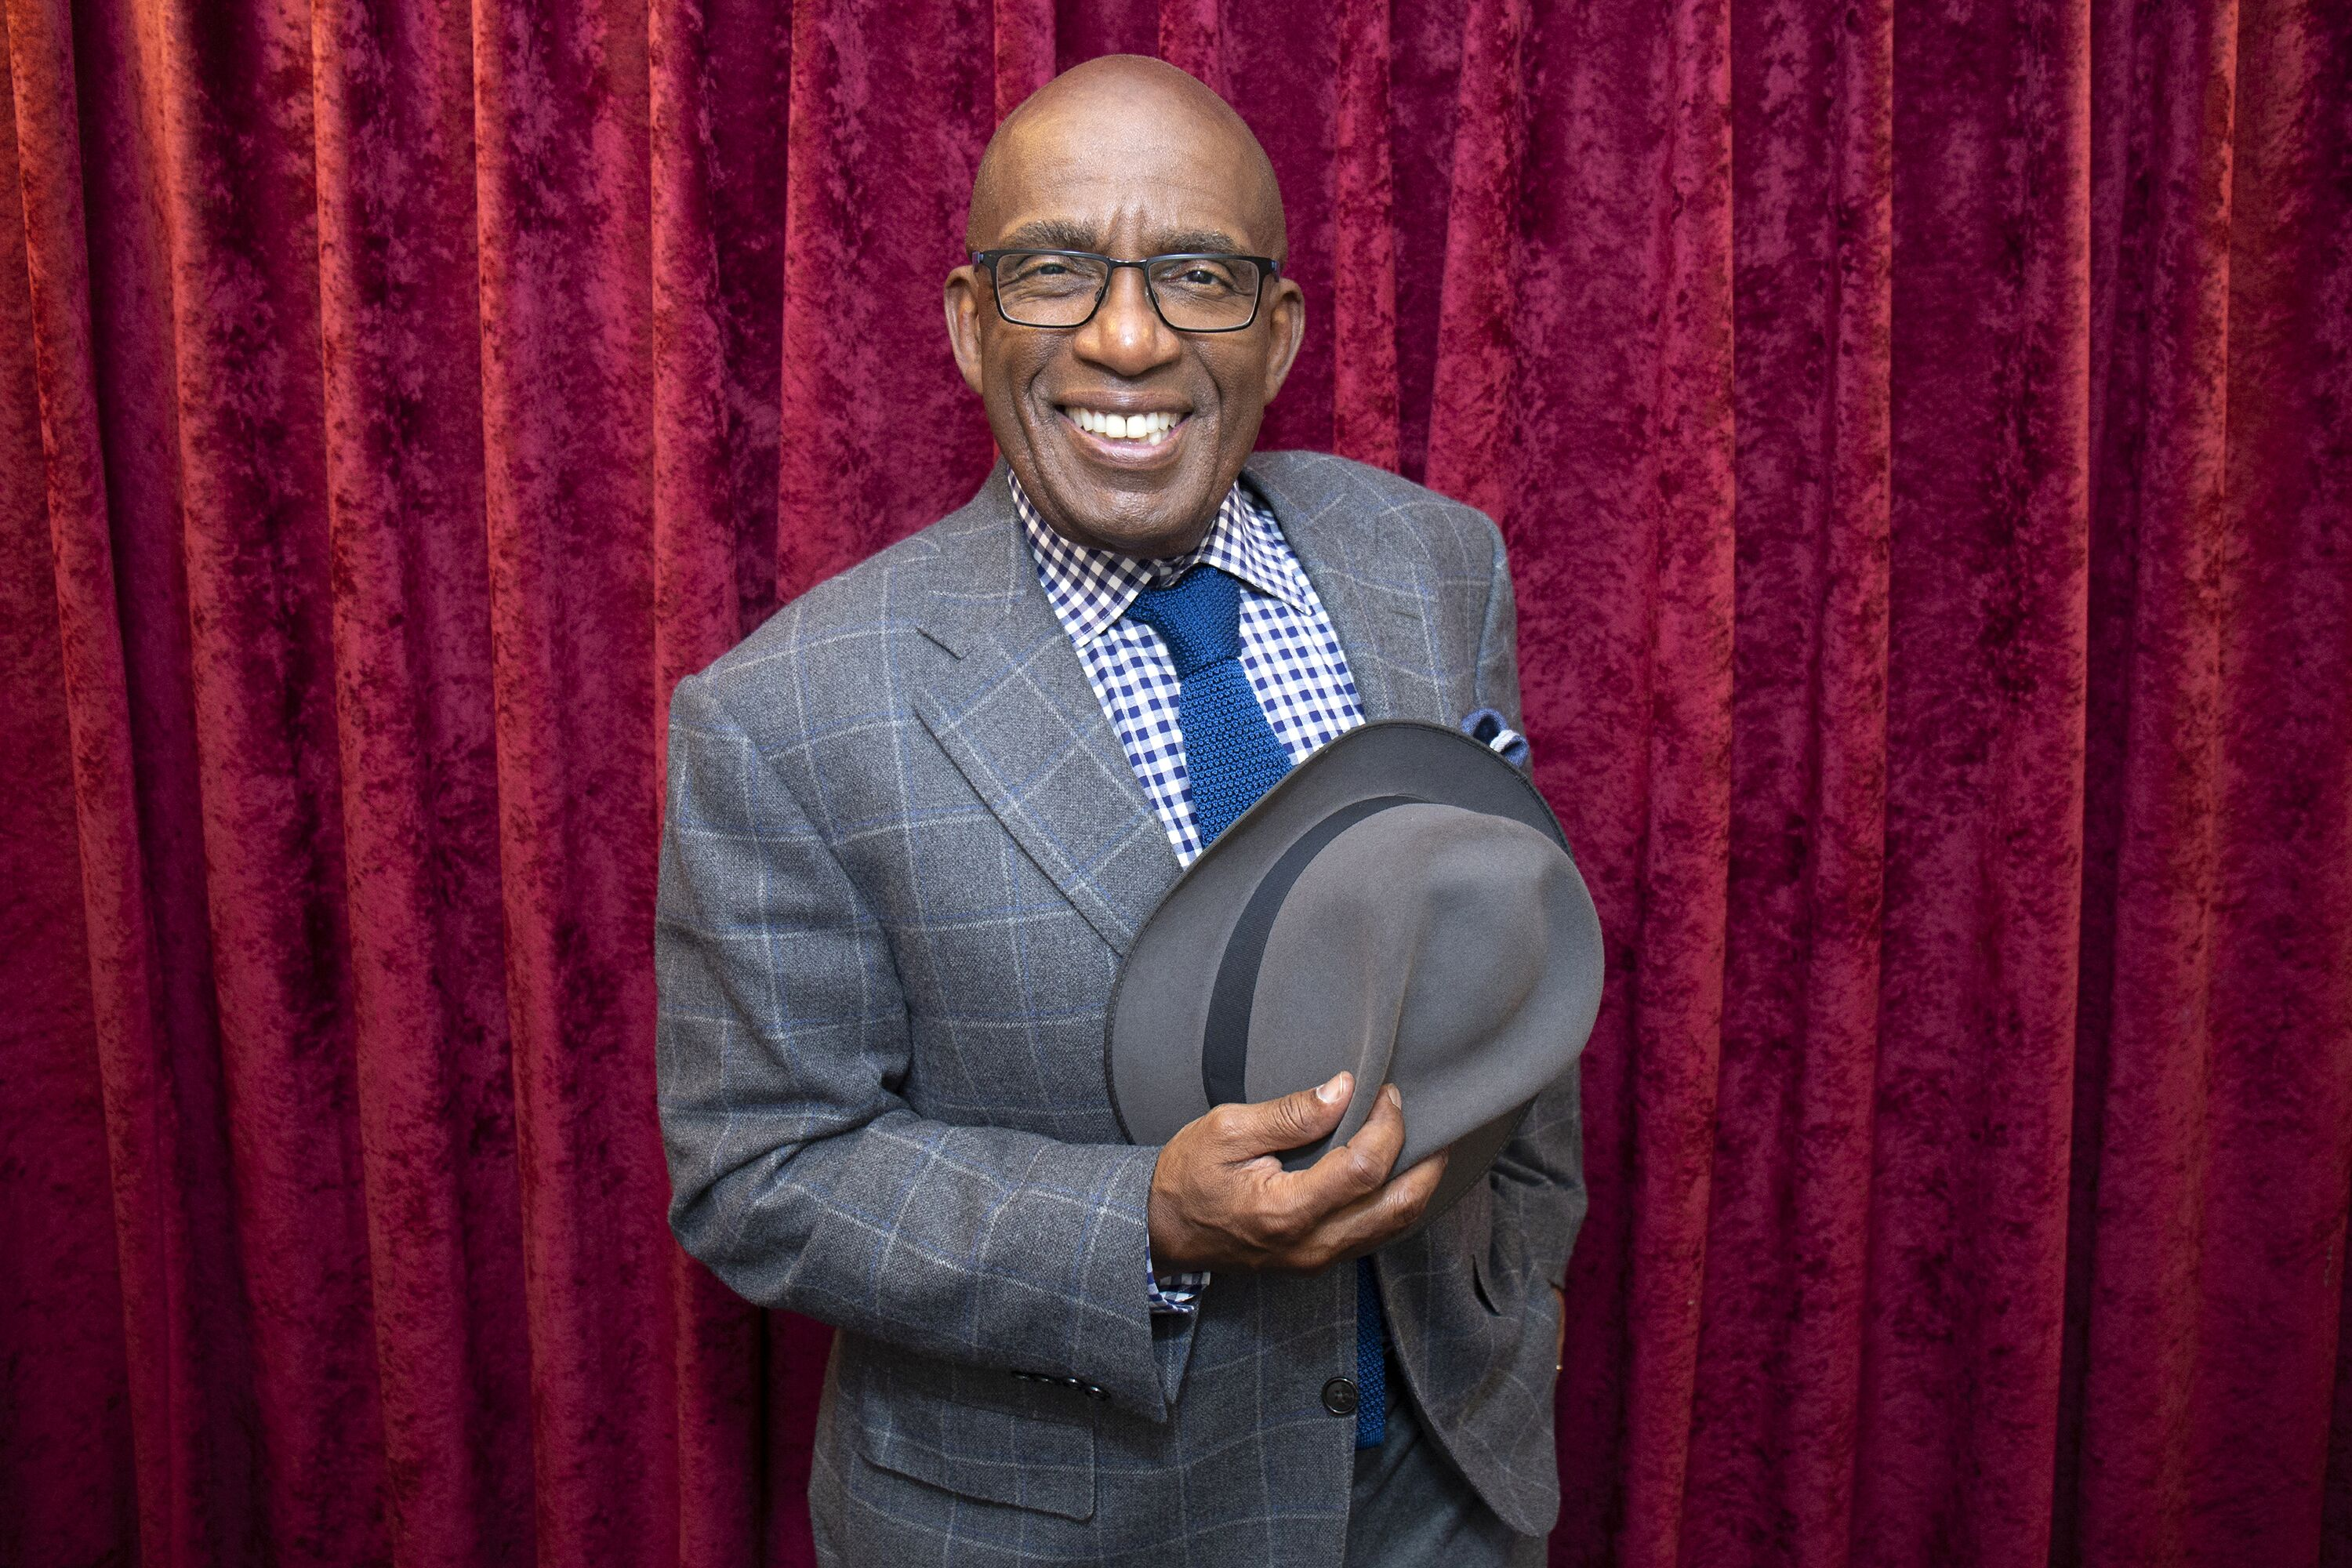 Al Roker visits SiriusXM Studios on October 2, 2018 in New York City. | Source: Getty Images